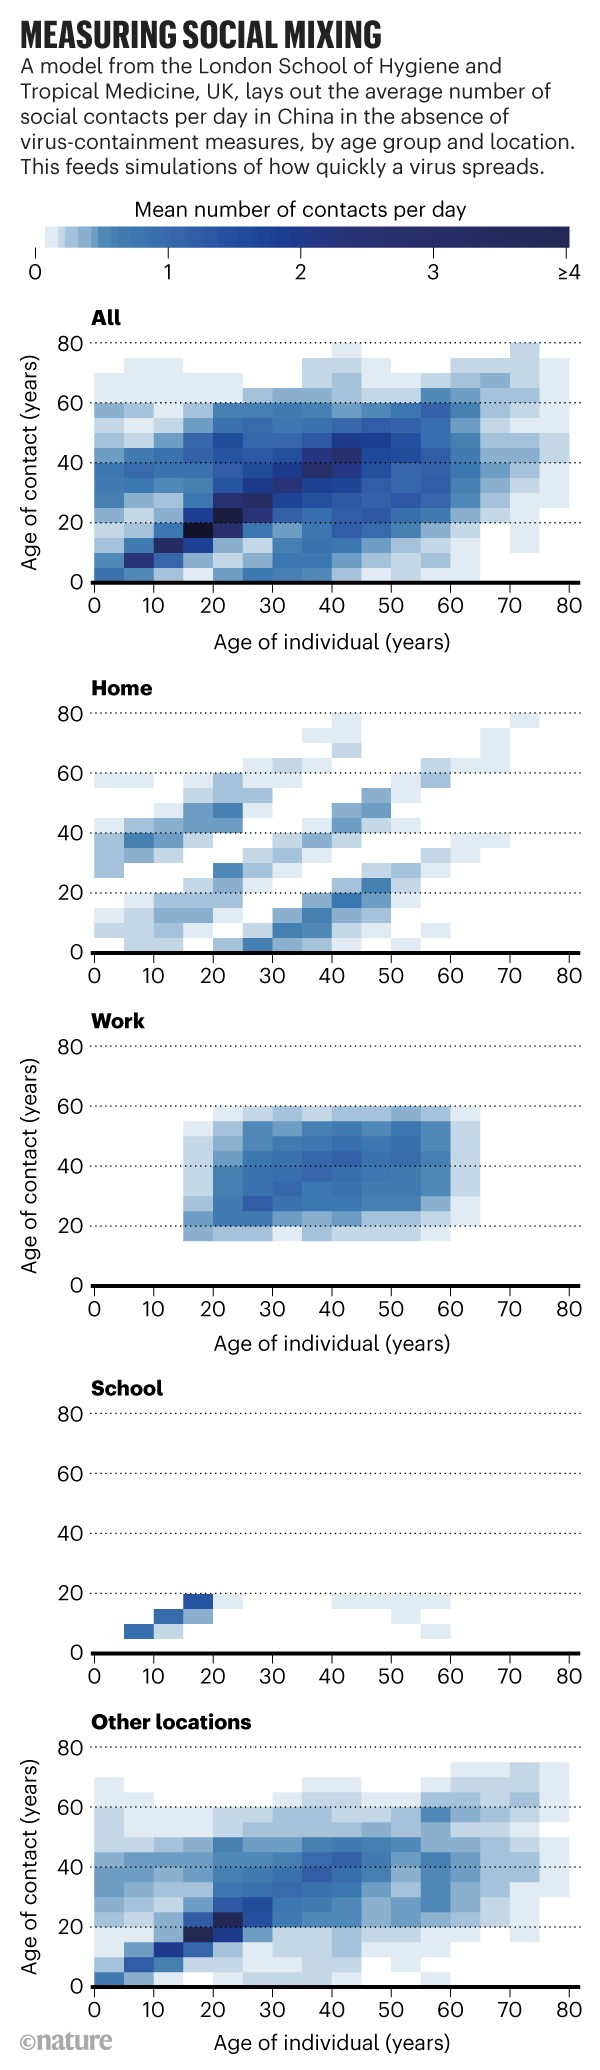 Measuring social mixing: Modelled average social contacts per day in China in the absence of virus-containment measures.